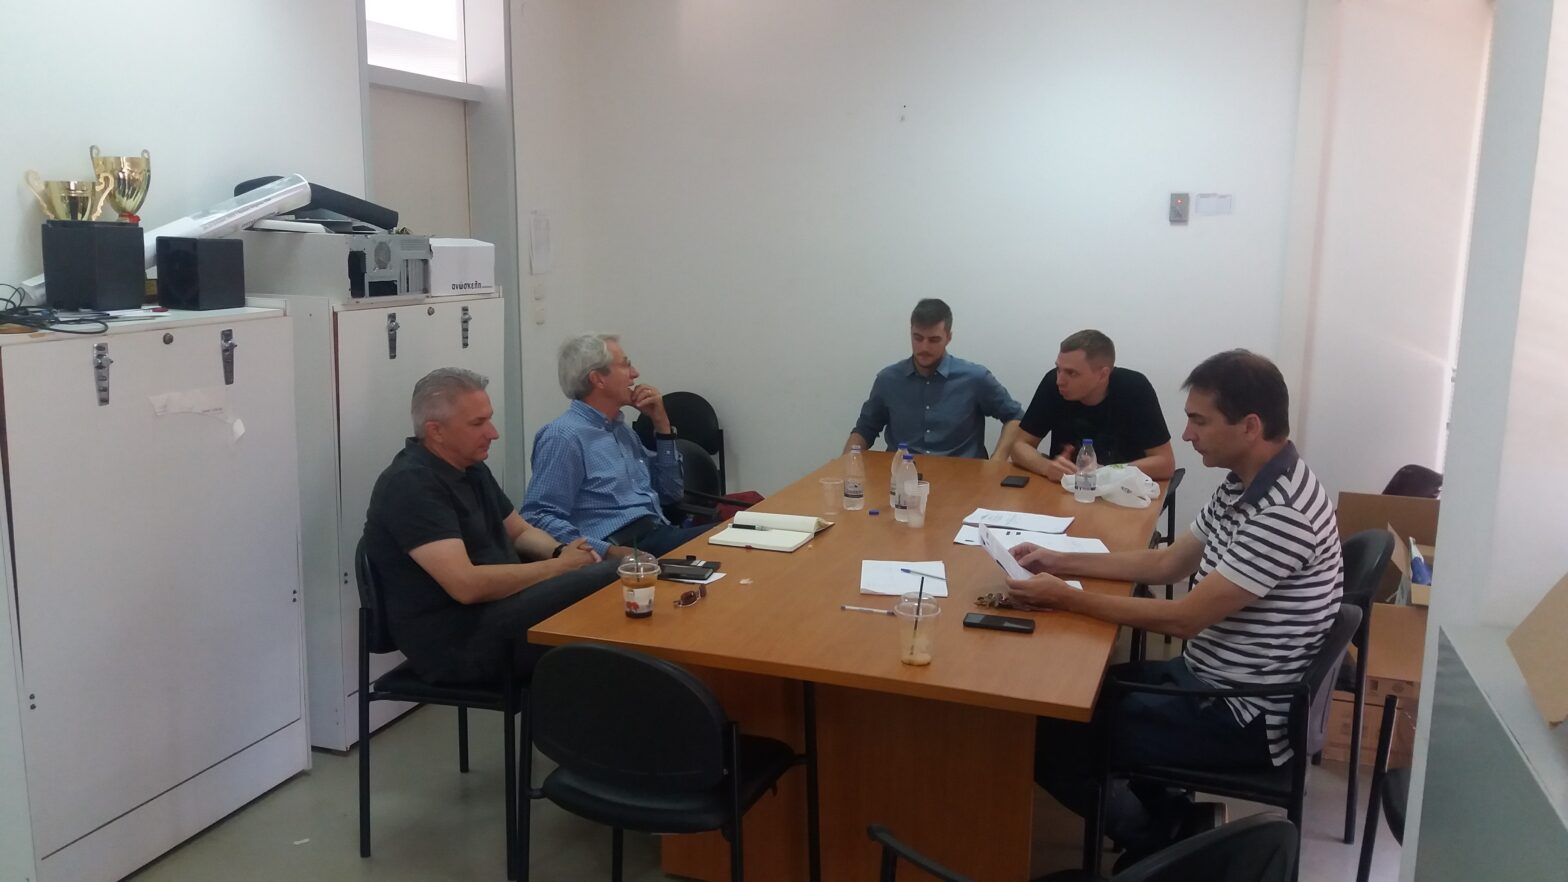 Photo from 2nd Meeting